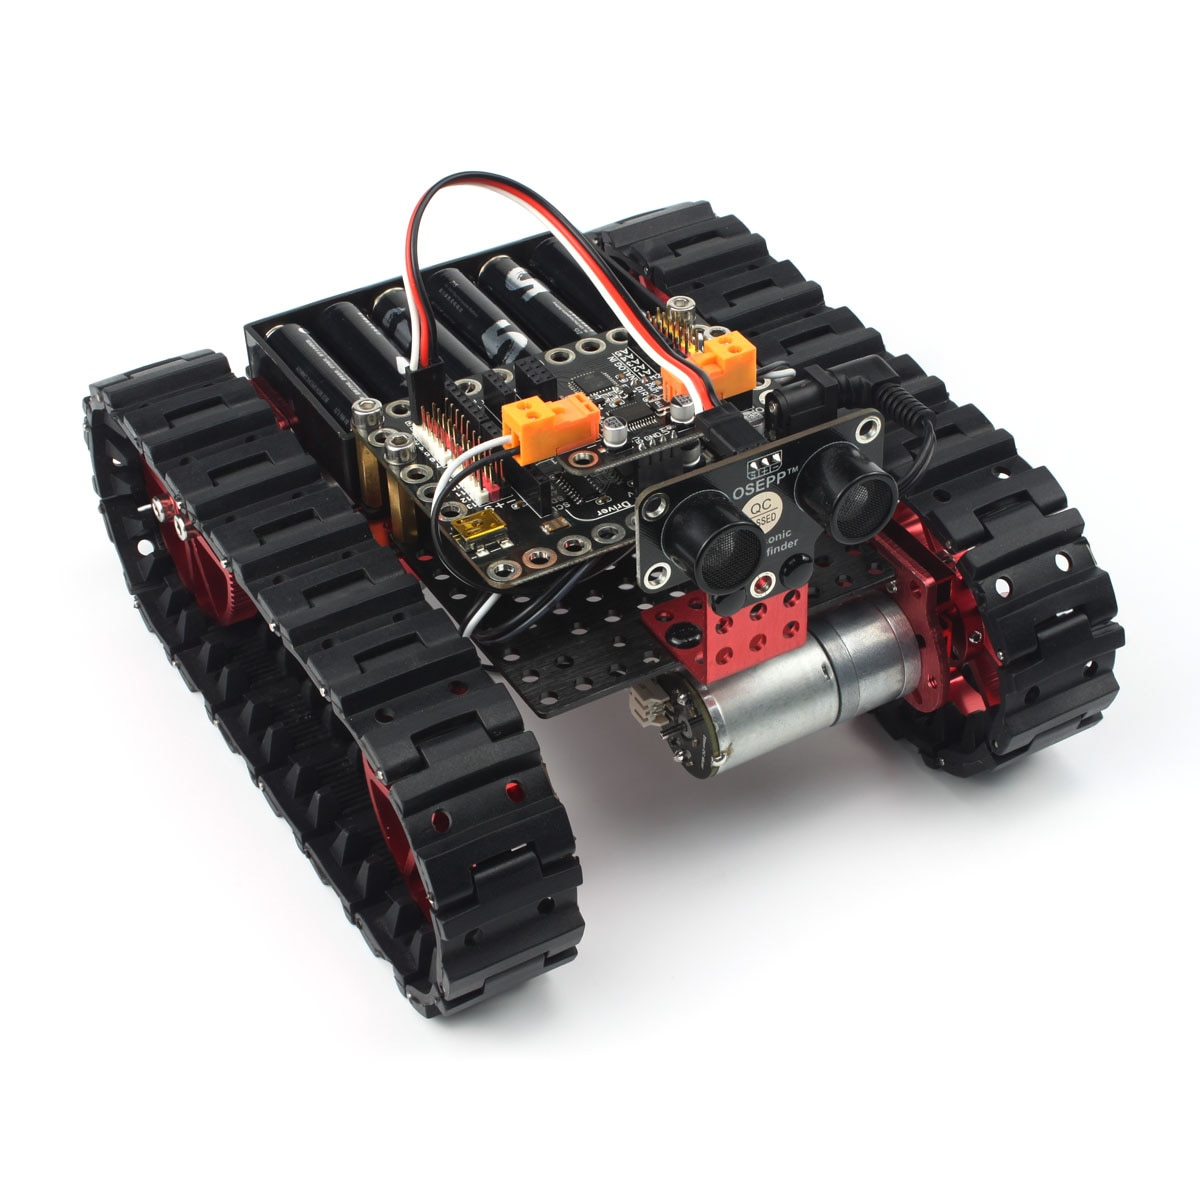 High quality aluminum tank robot kit Learn DIY mechanical kit RC remote control for Arduino programming